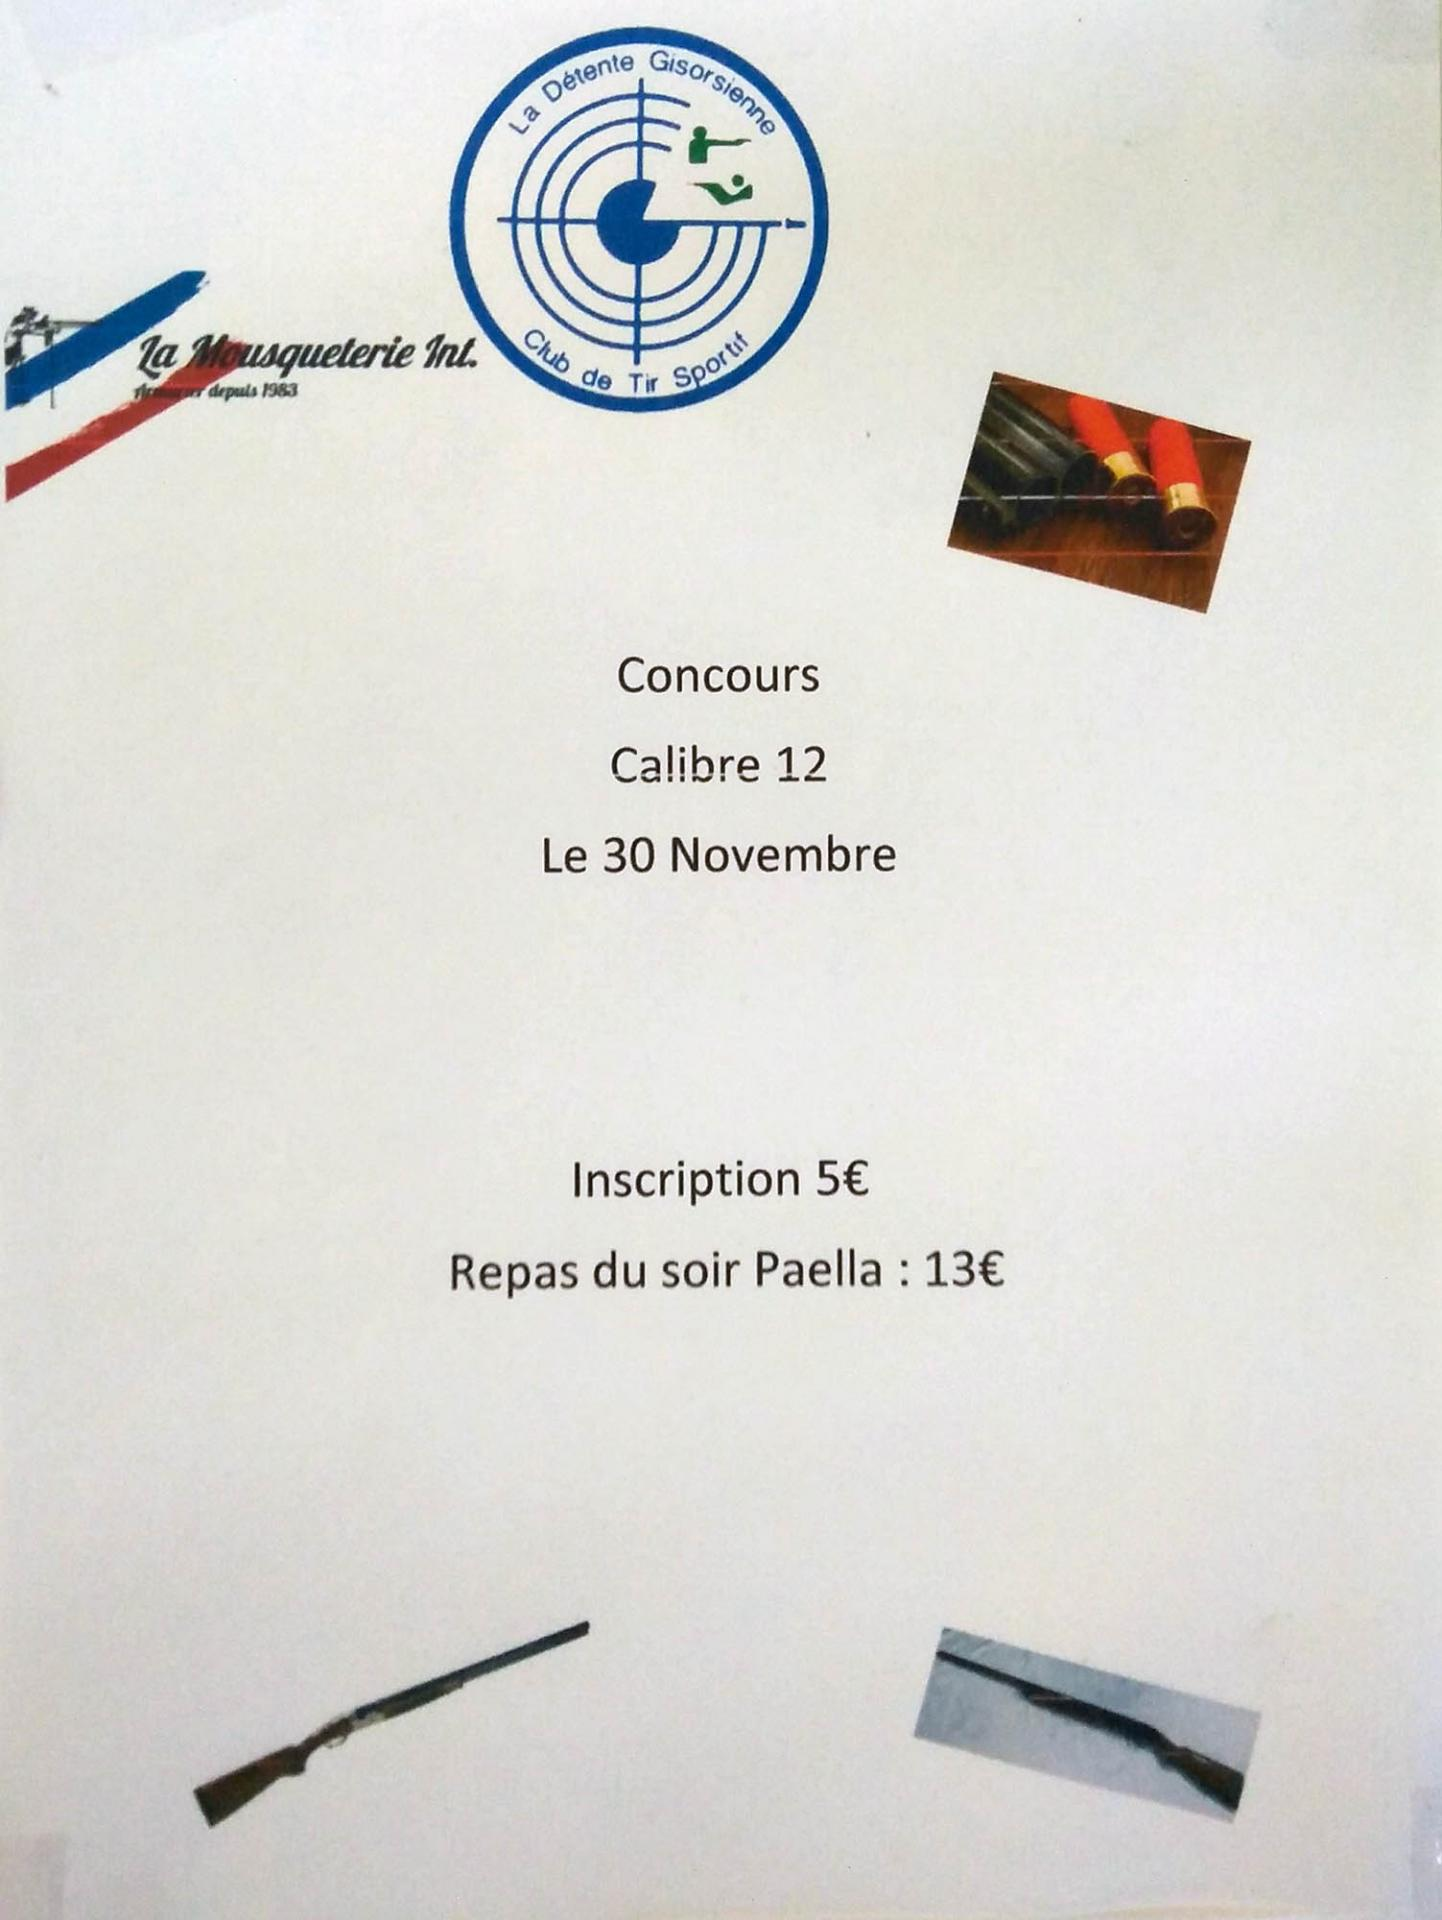 Concours cal12